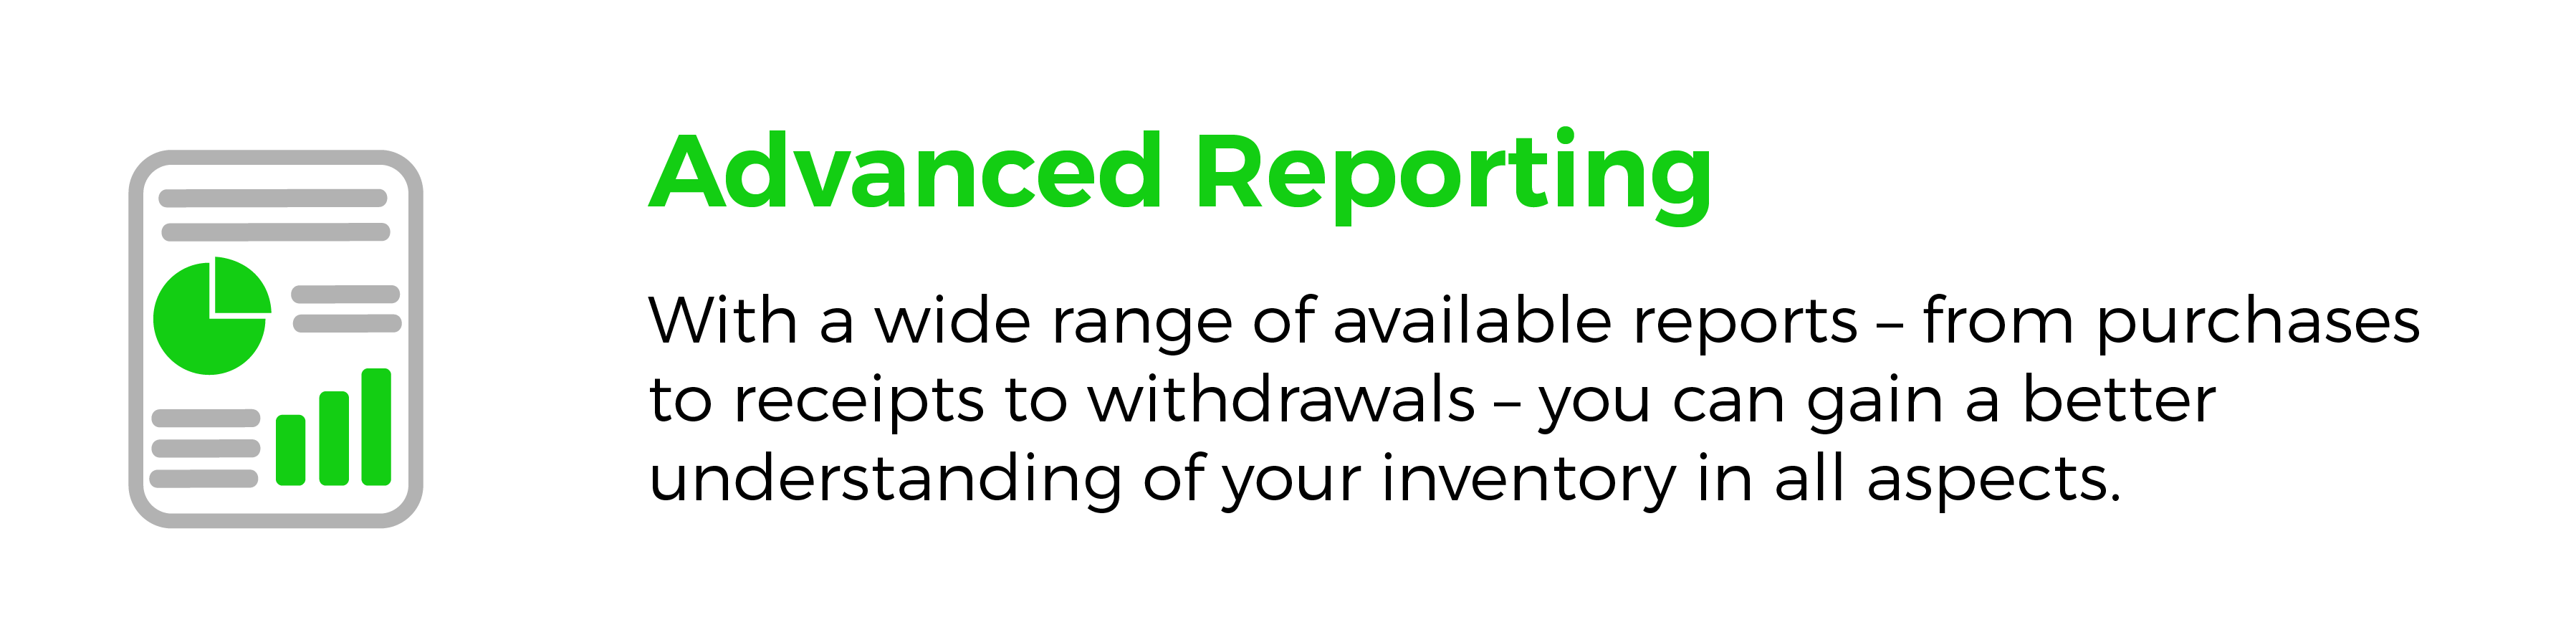 Advanced Reporting-01